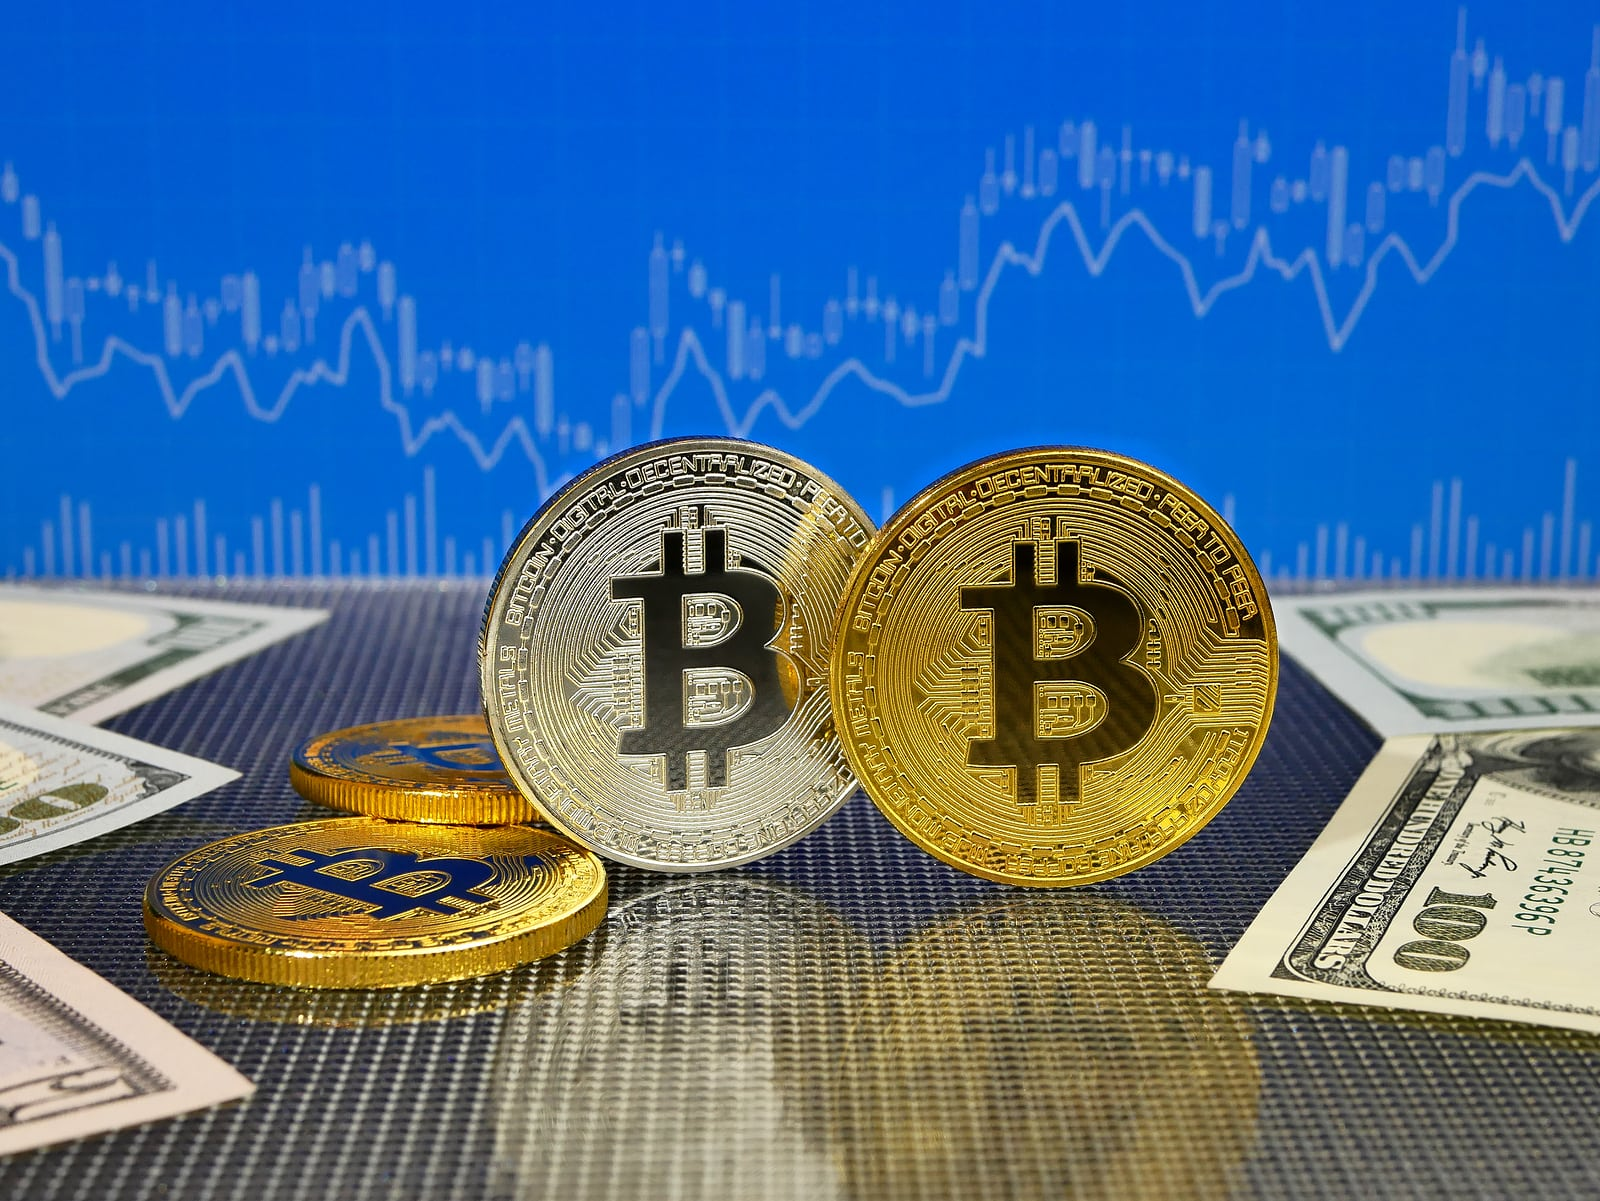 Cme group bitcoin futures could launch early as second week of cme group bitcoin futures could launch early as second week of december biocorpaavc Choice Image